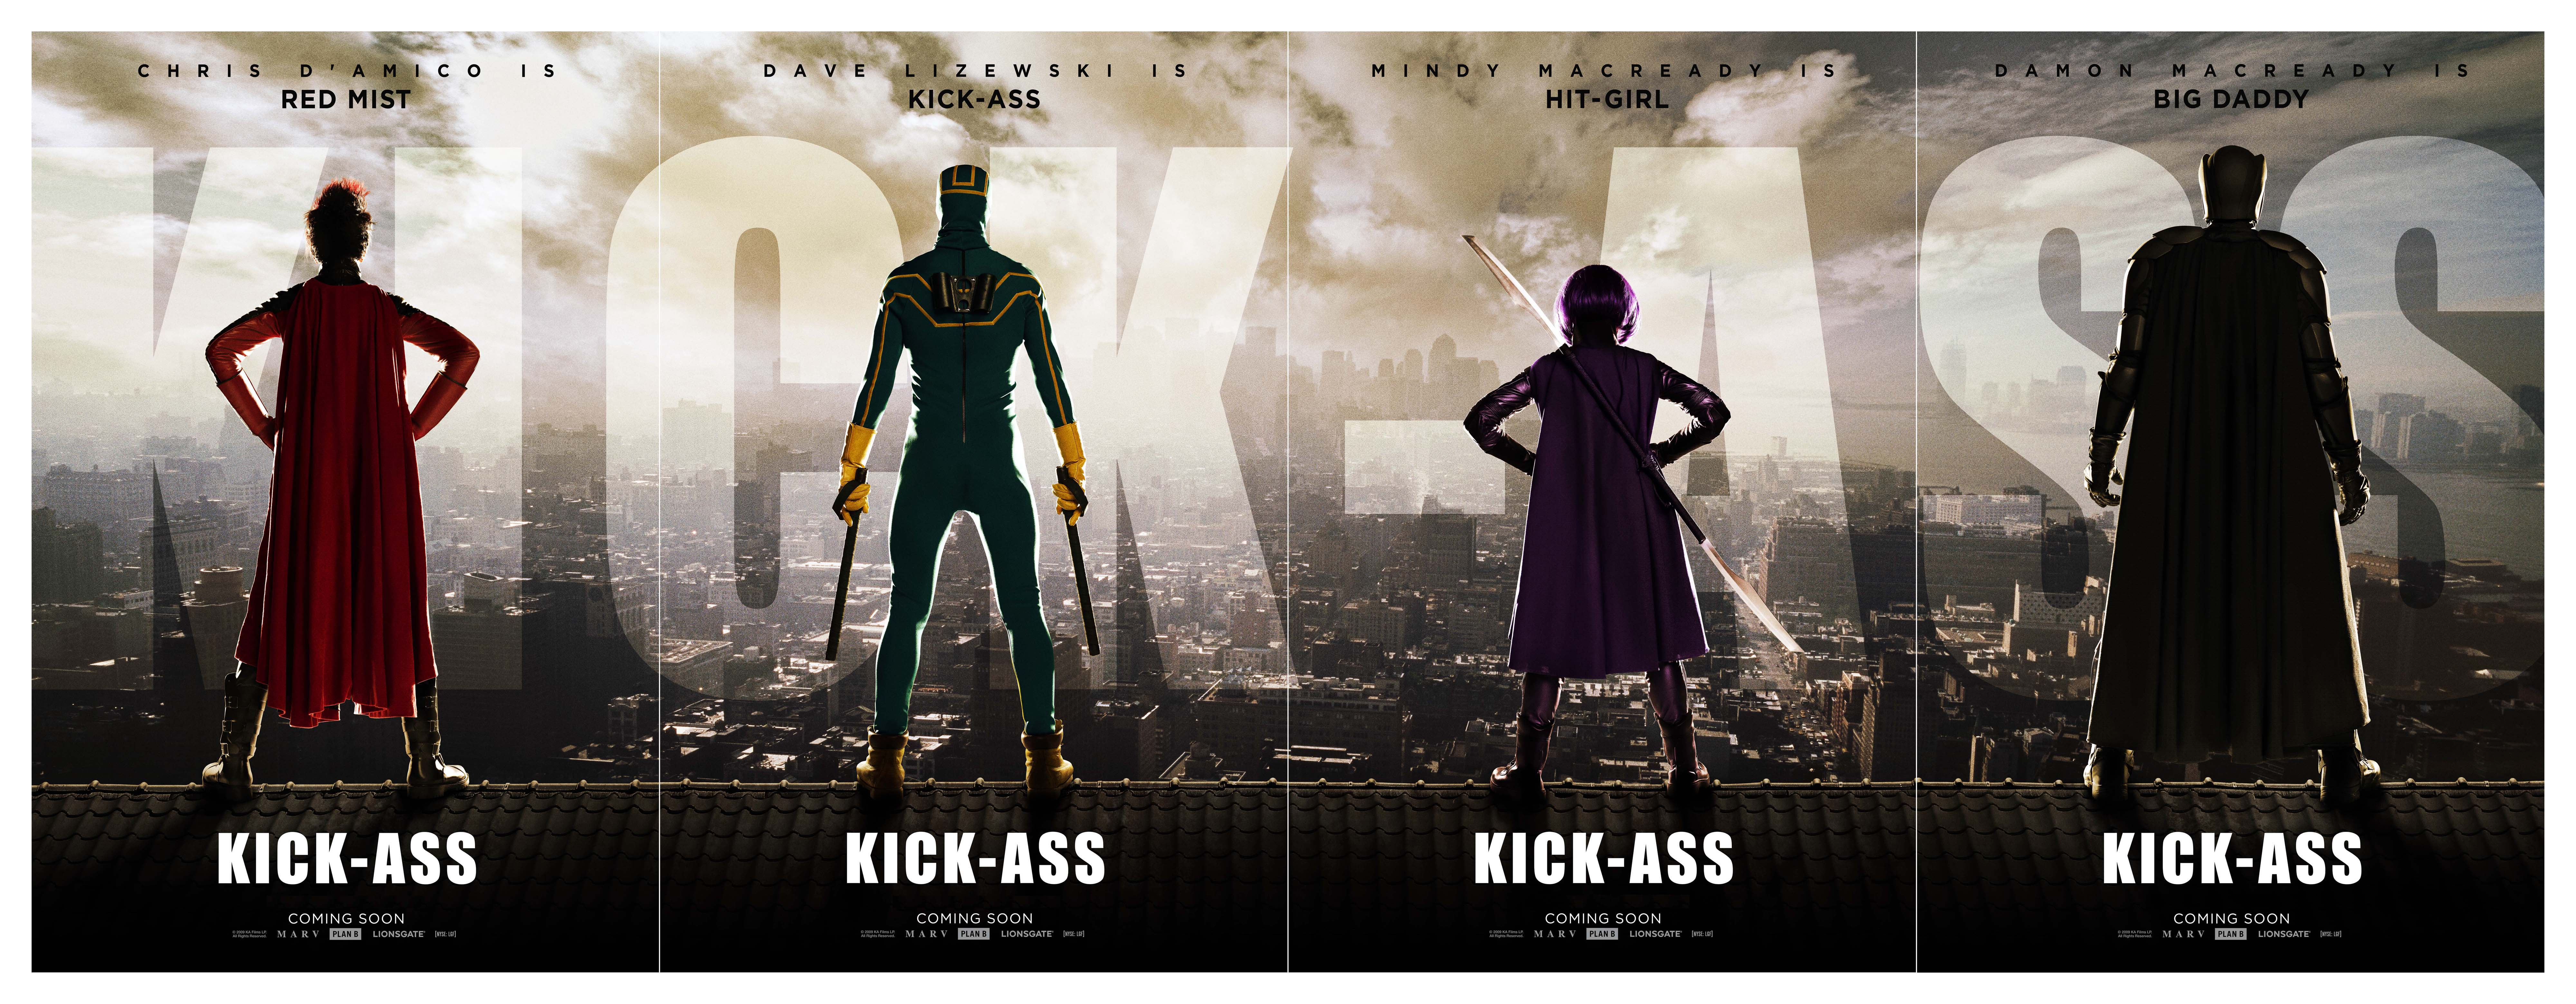 Love Wallpaper Kickass : Kick-Ass 5k Retina Ultra HD Wallpaper and Background Image ...